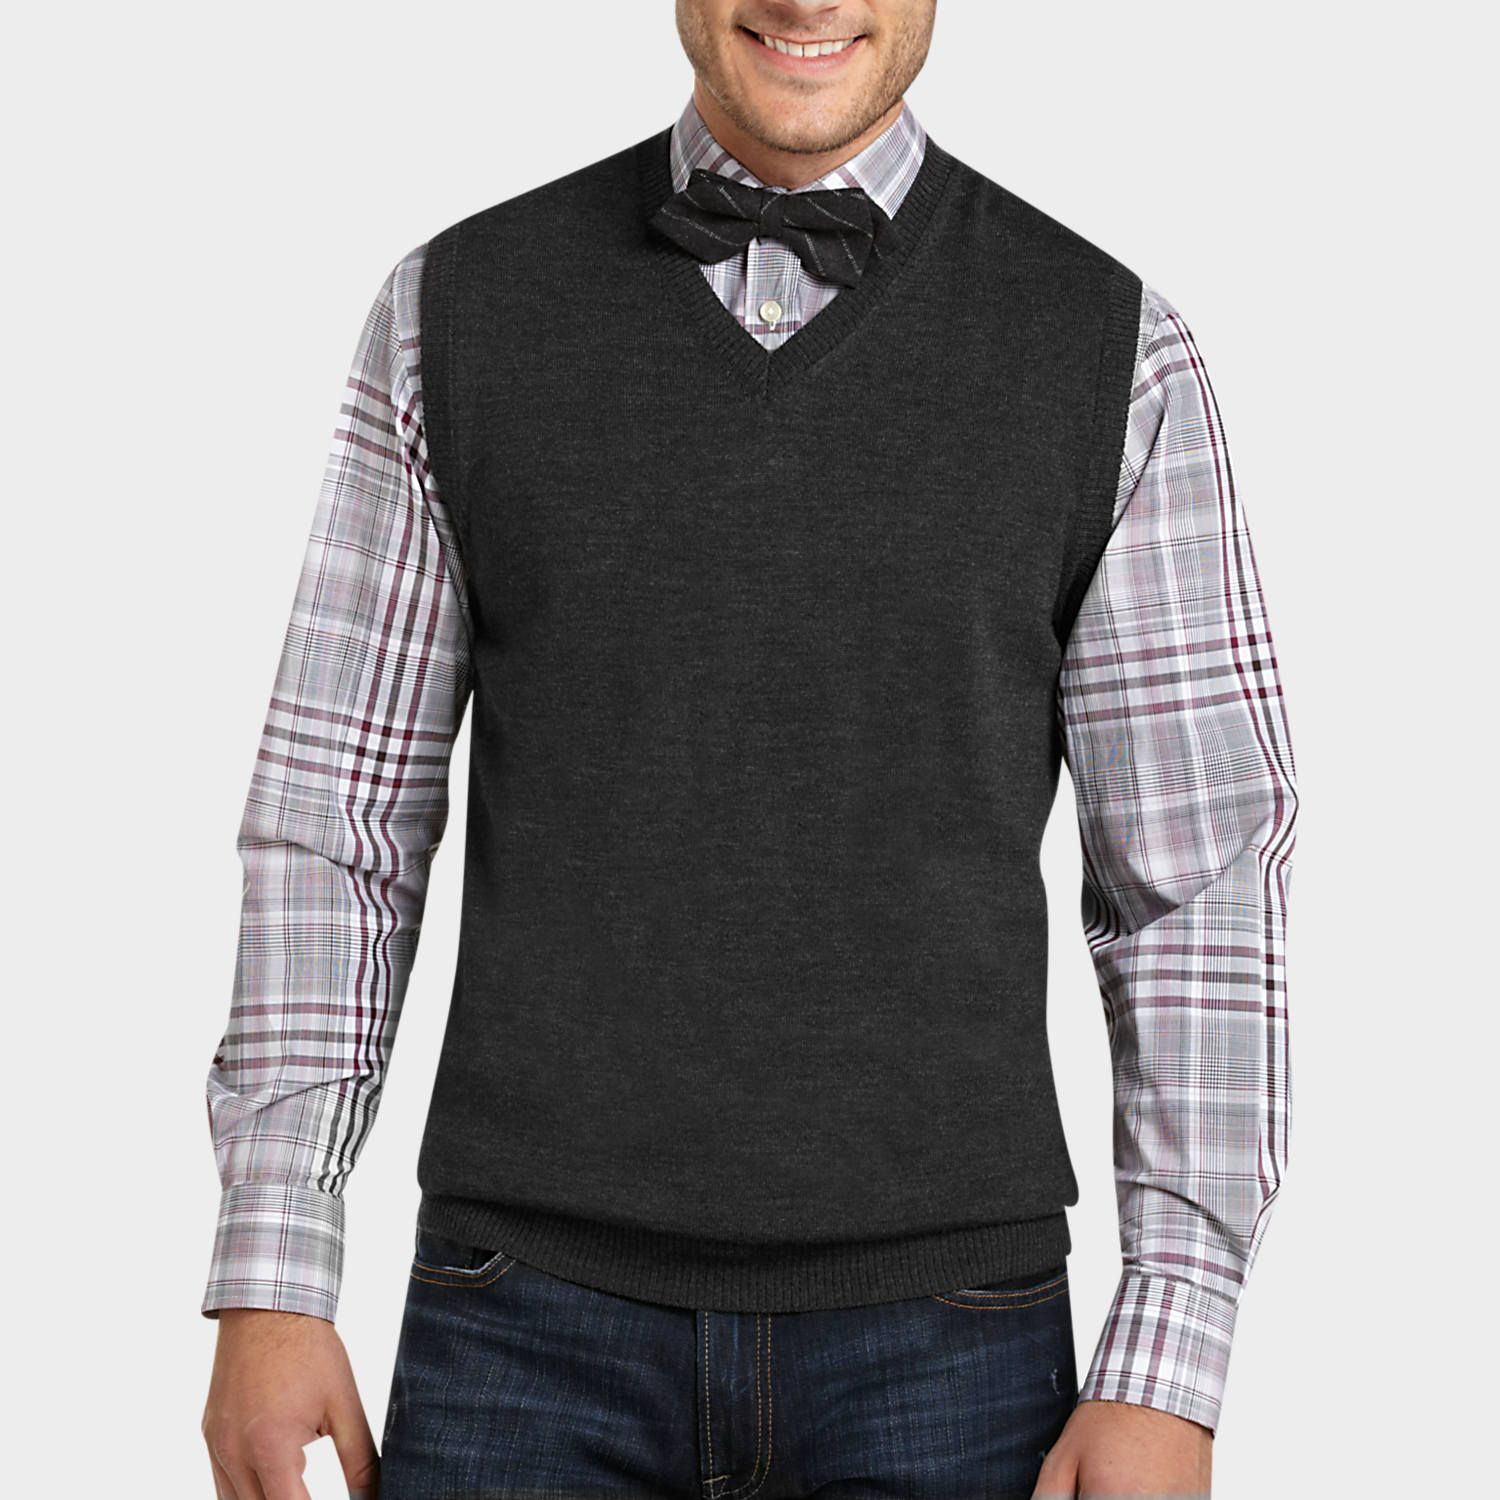 Sweater vests and bow ties. | If you're looking to buy me ...